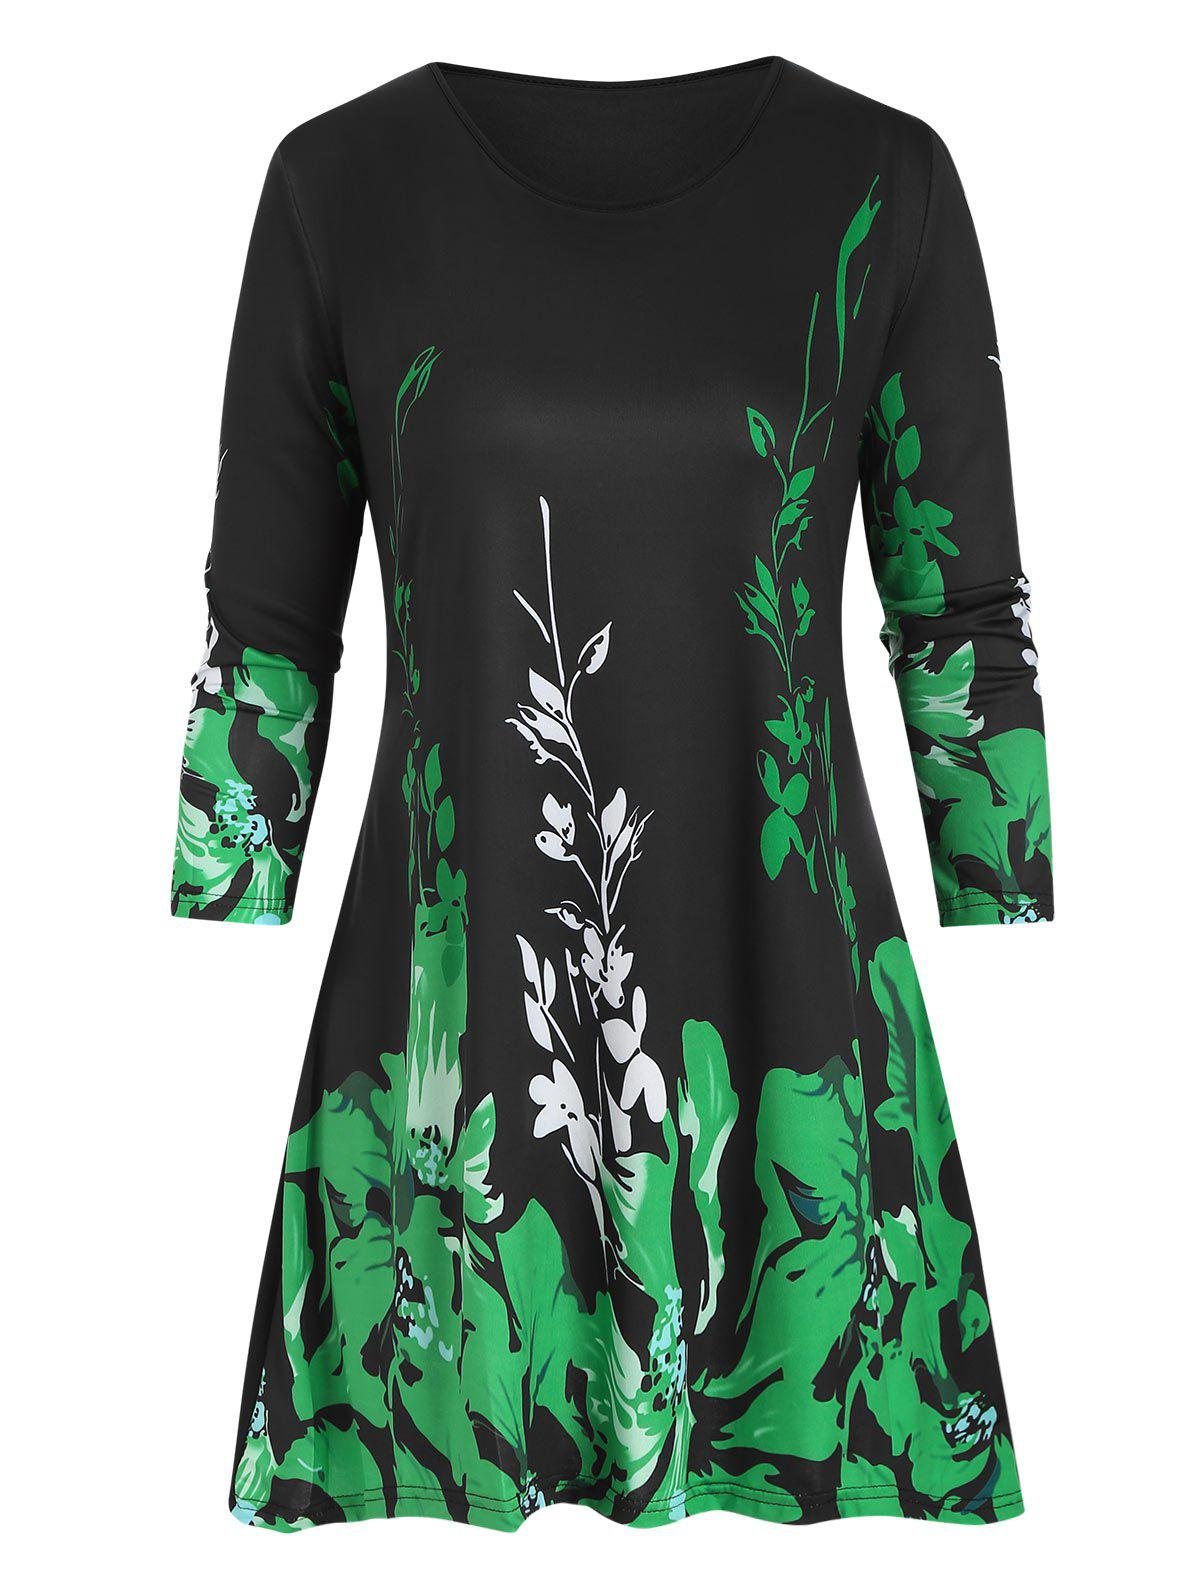 Floral Plus Size Three Quarter Sleeve Tunic Top - GREEN 3X